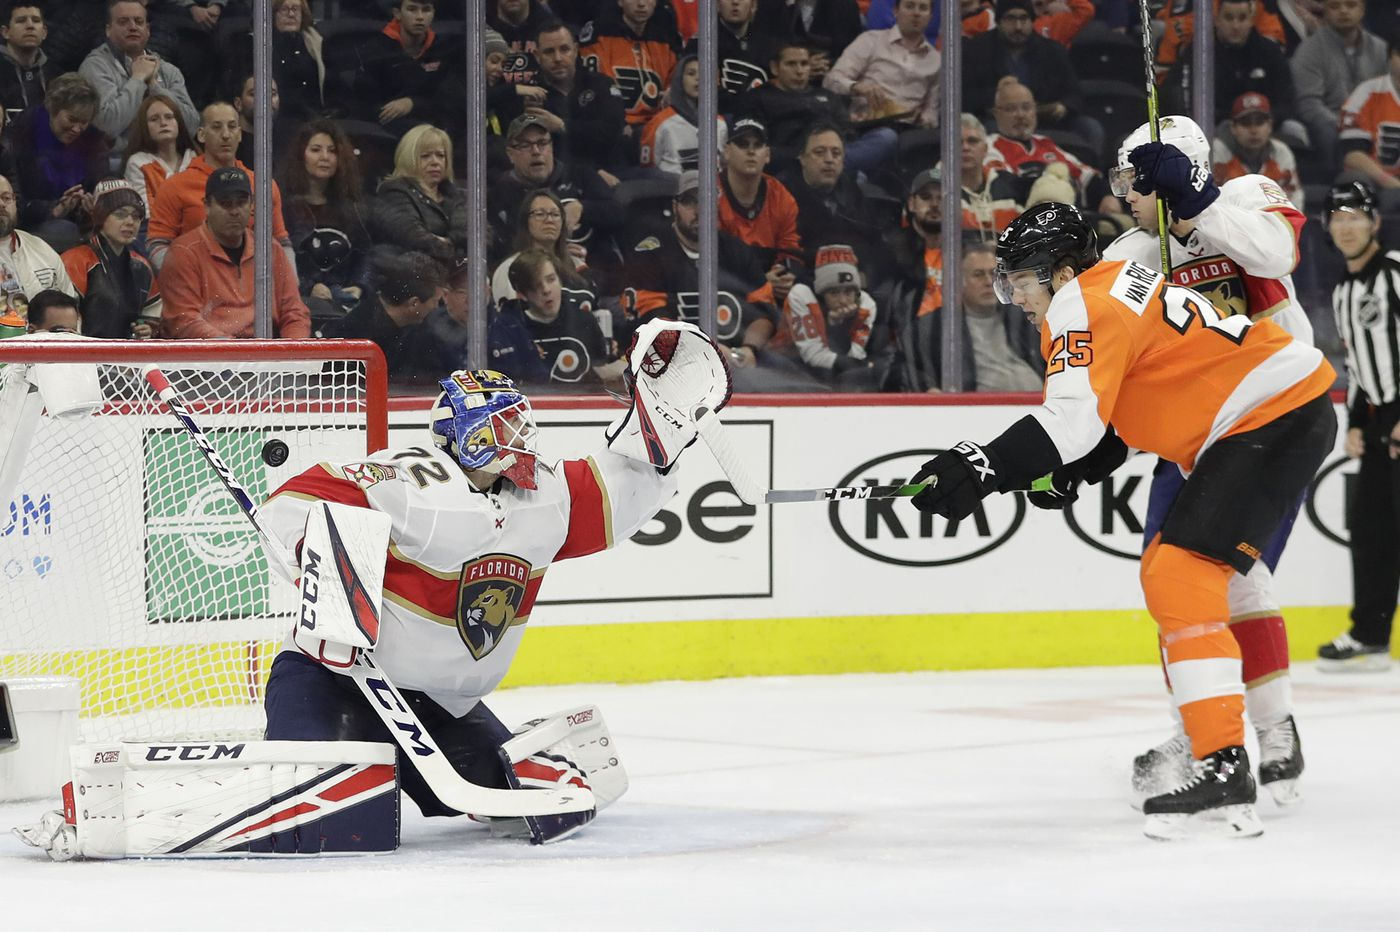 Observations from Flyers' 4-1 victory over Panthers: Important win, memories of rats | Mike Sielski